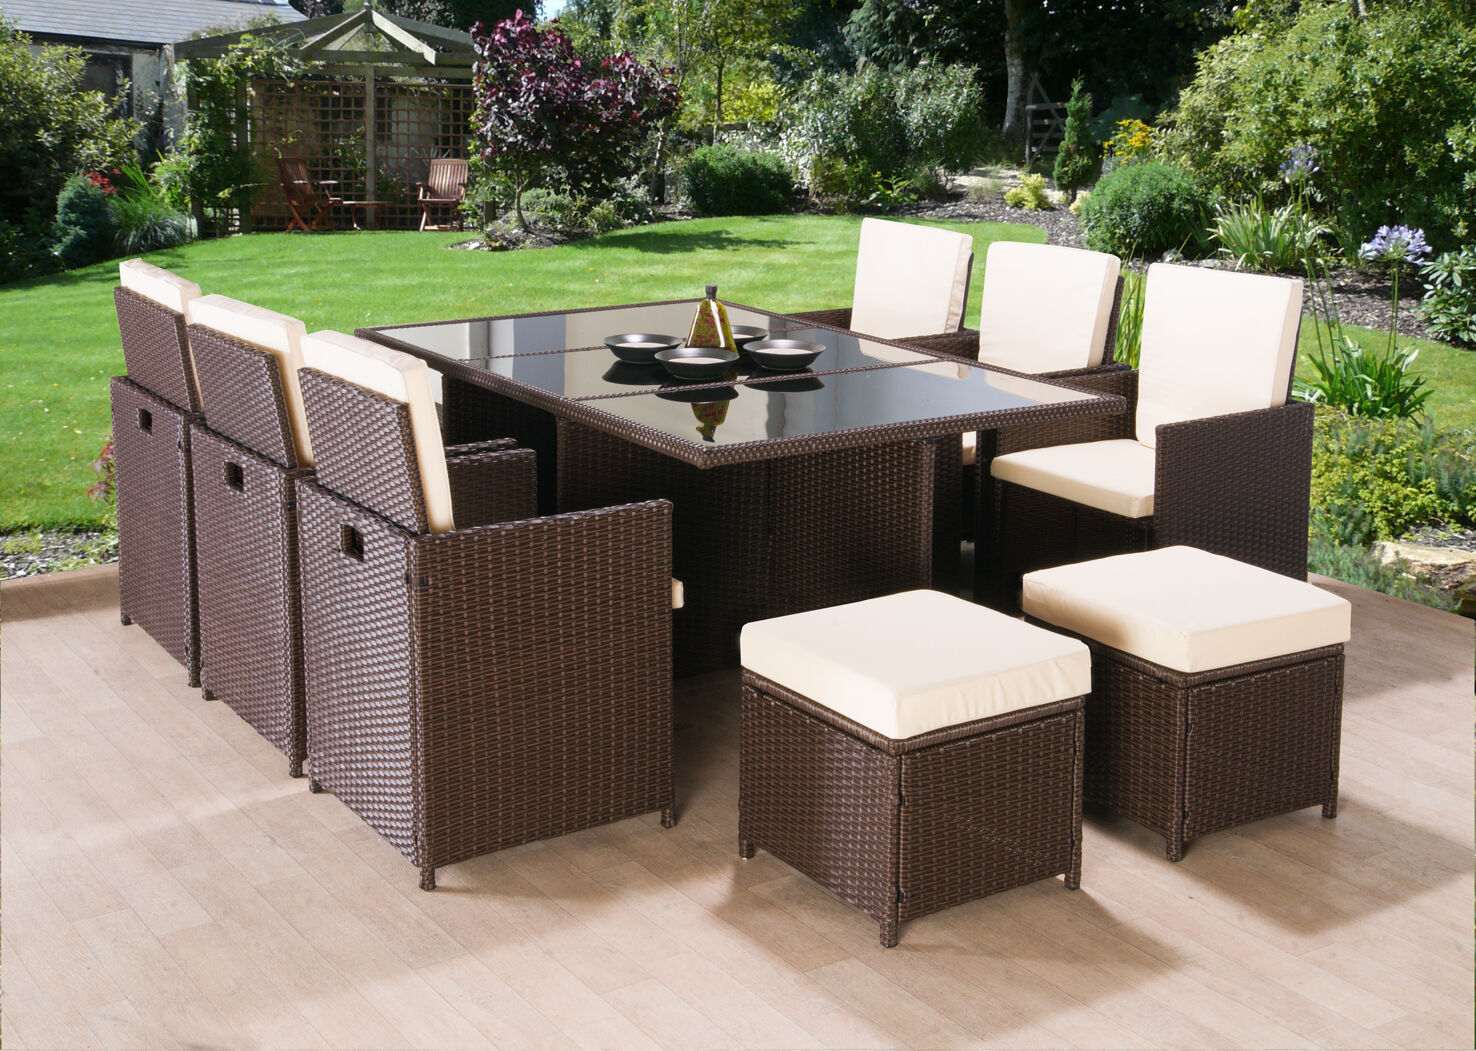 Rattan Garden Furniture Cube Set Chairs Sofa Table Outdoor Patio Wicker Picclick Uk